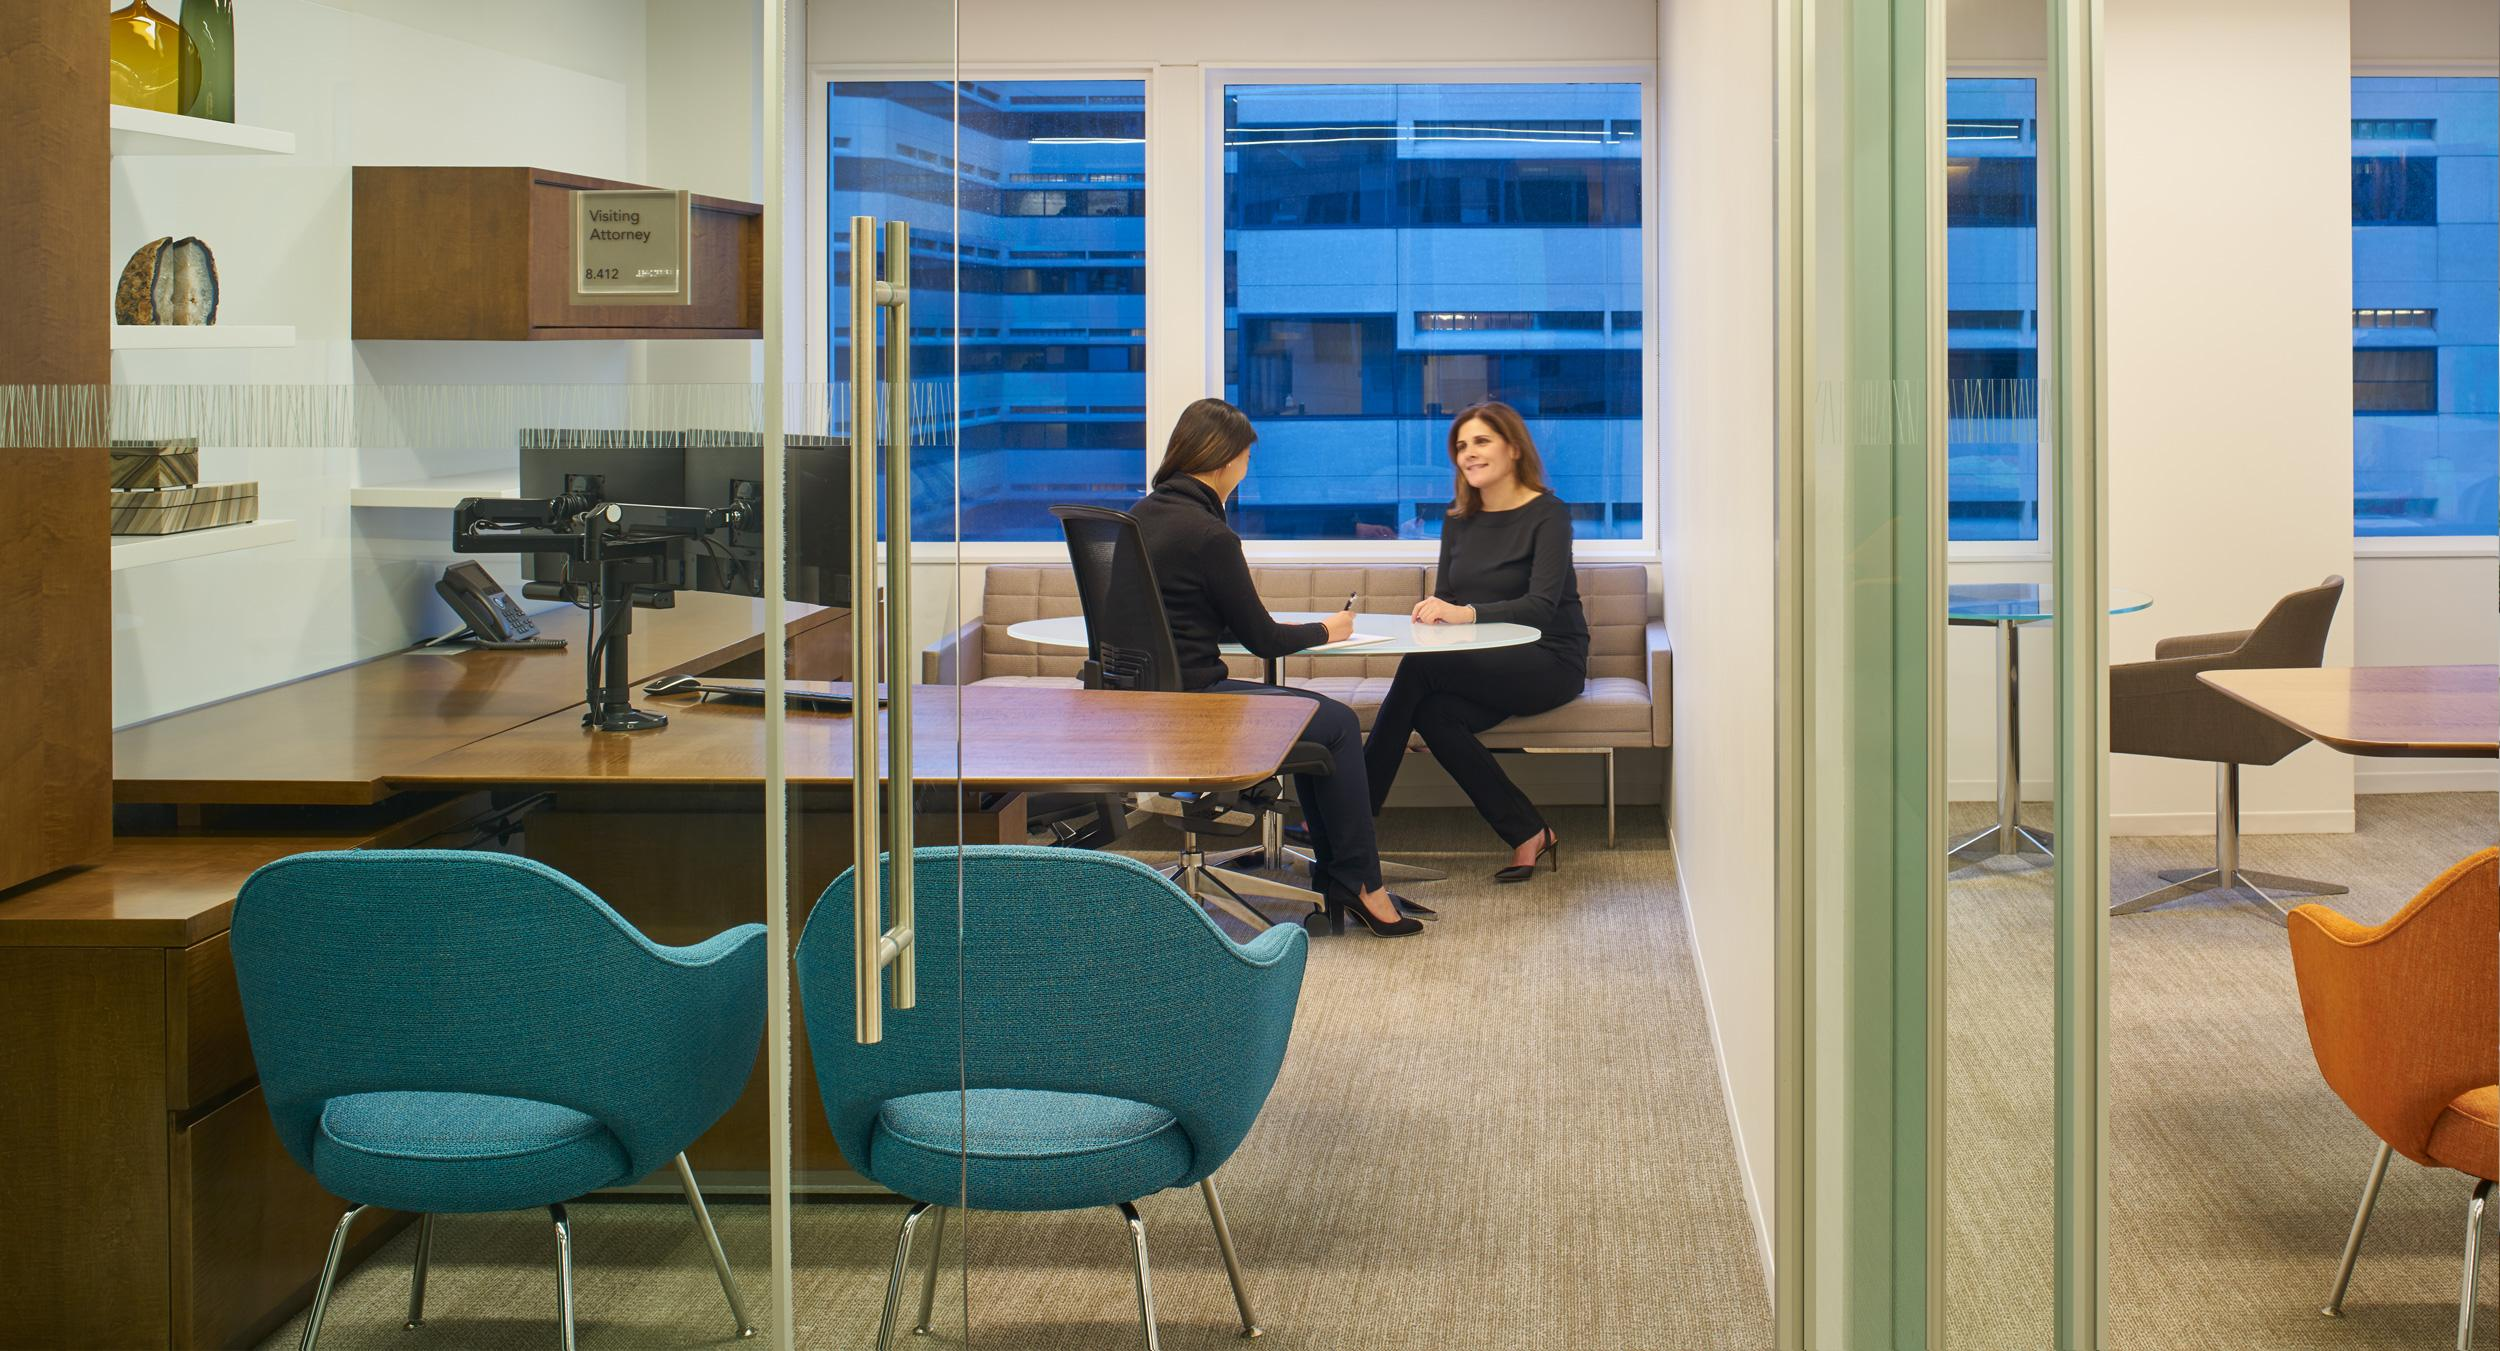 Universal attorney offices feature adjustable-height desking and a comfortable meeting space.